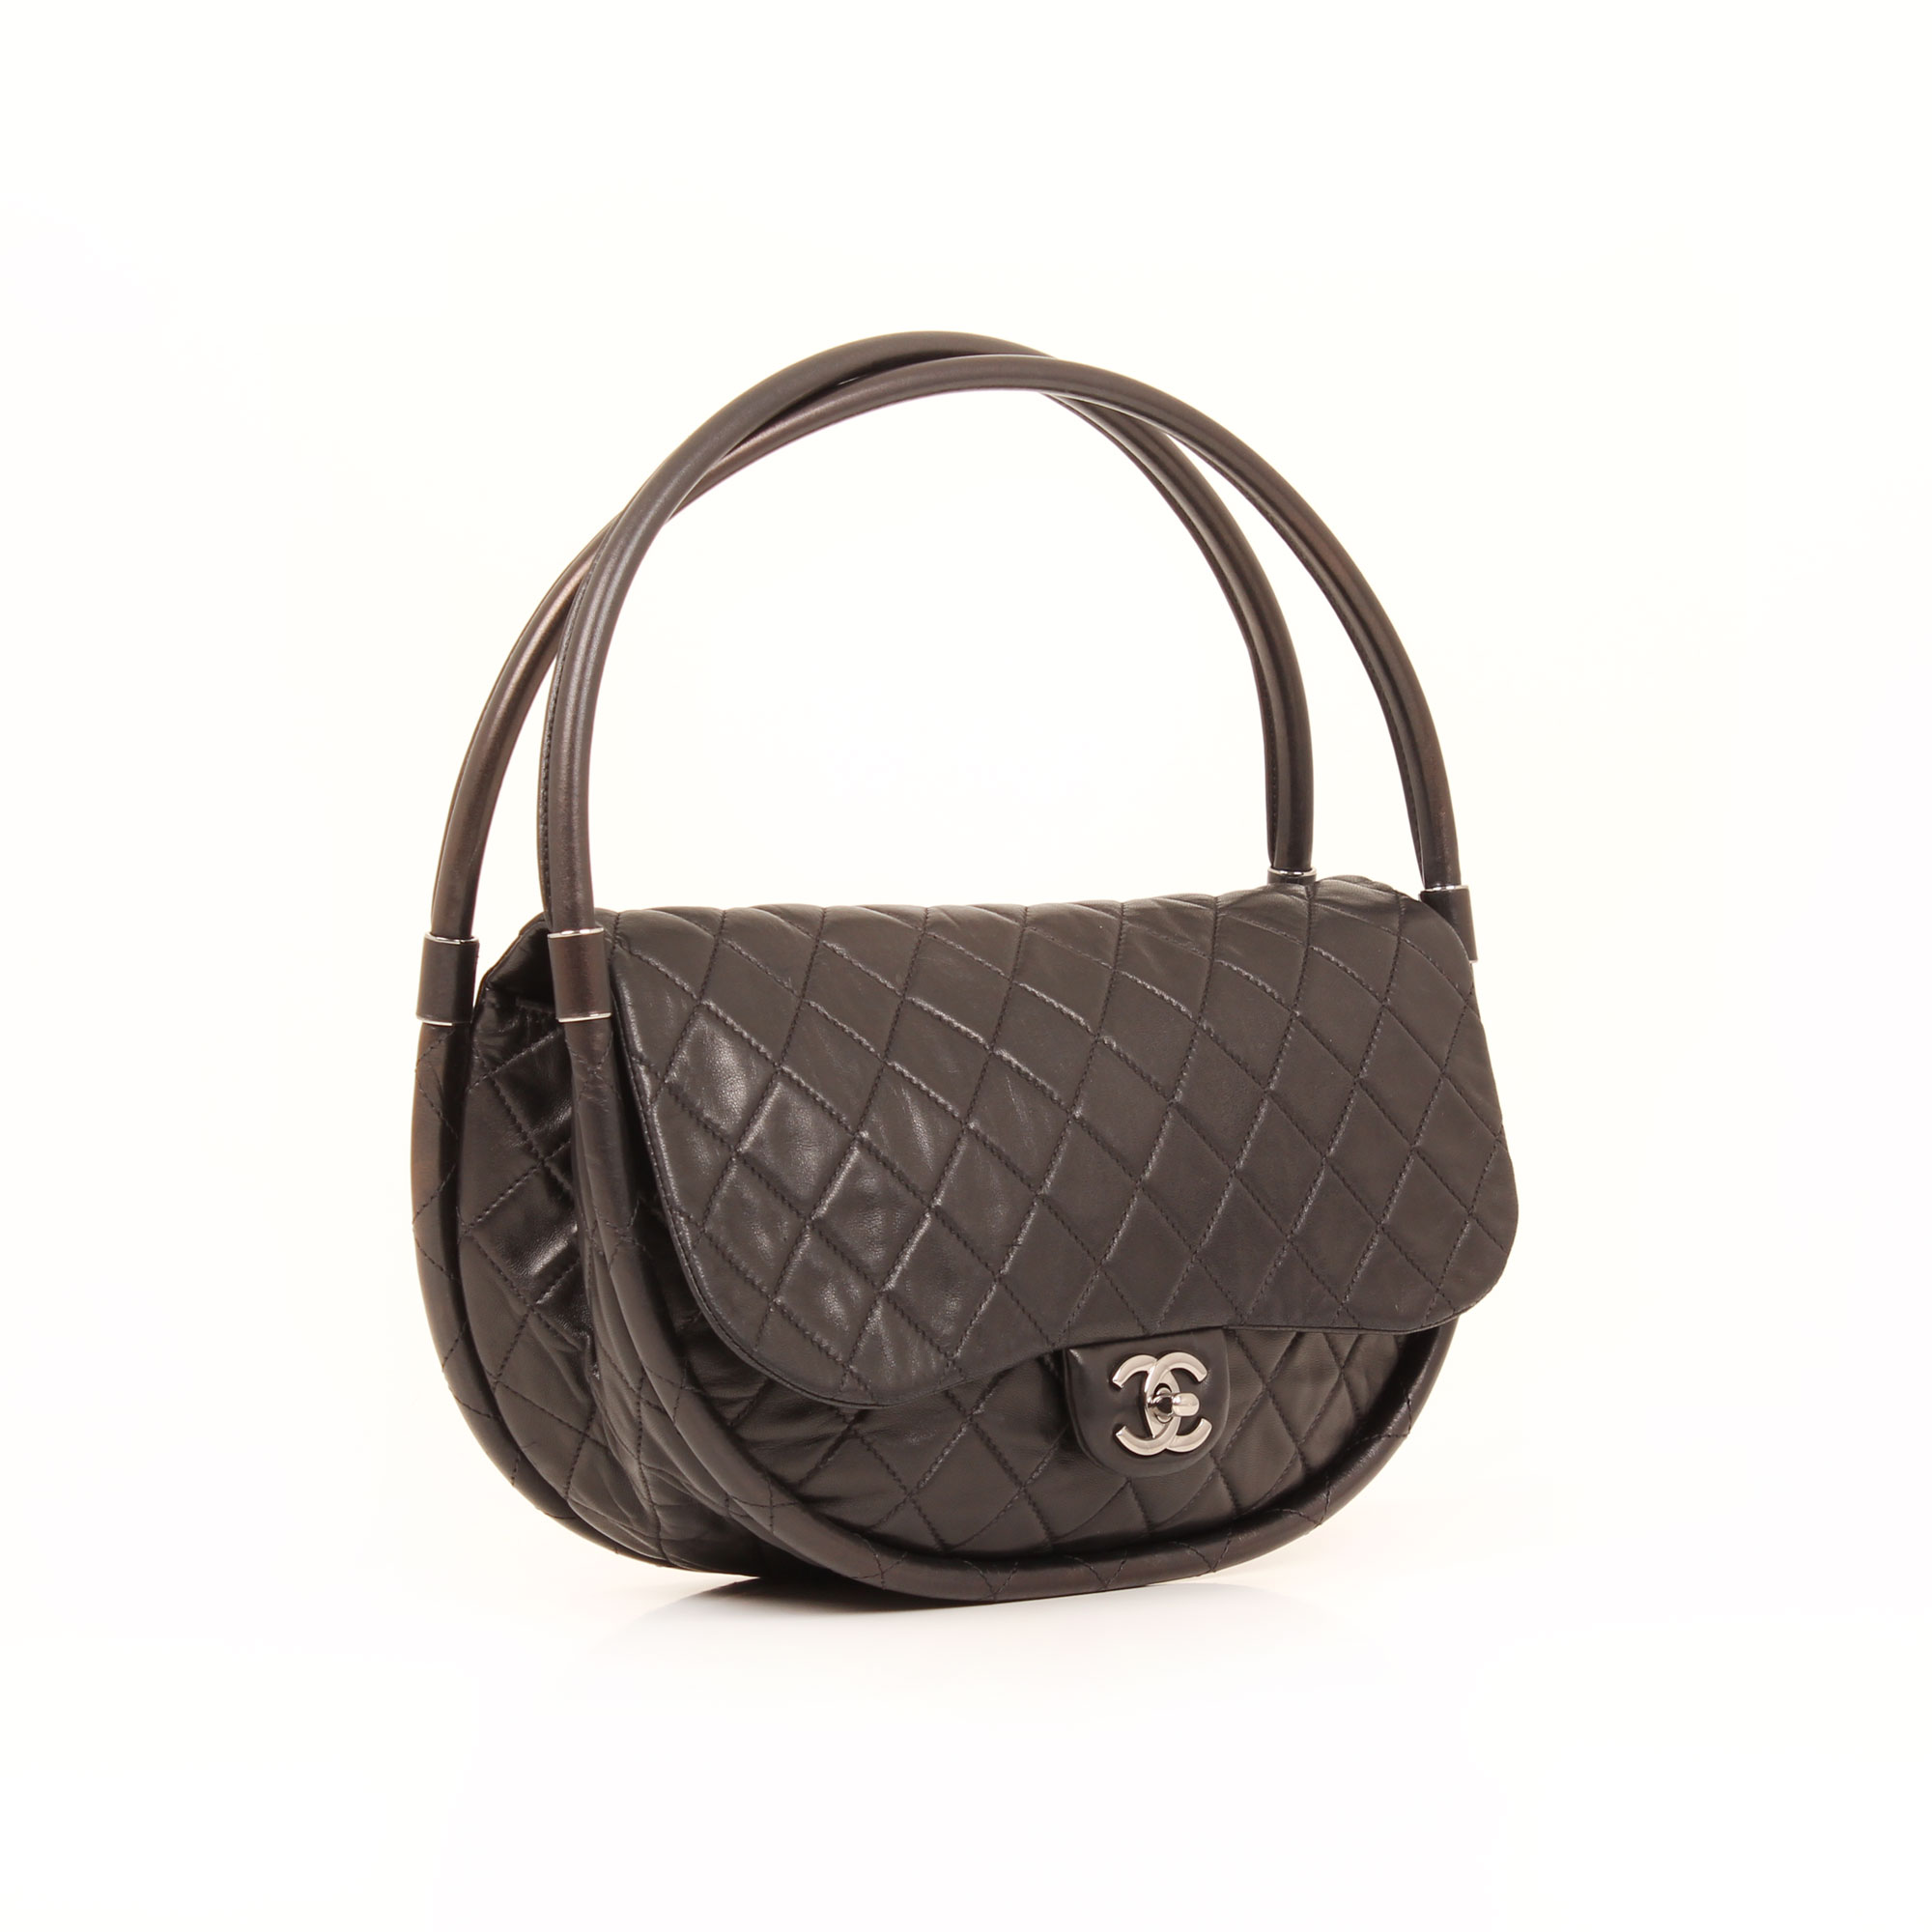 bag-chanel-hula-hoop-black-general